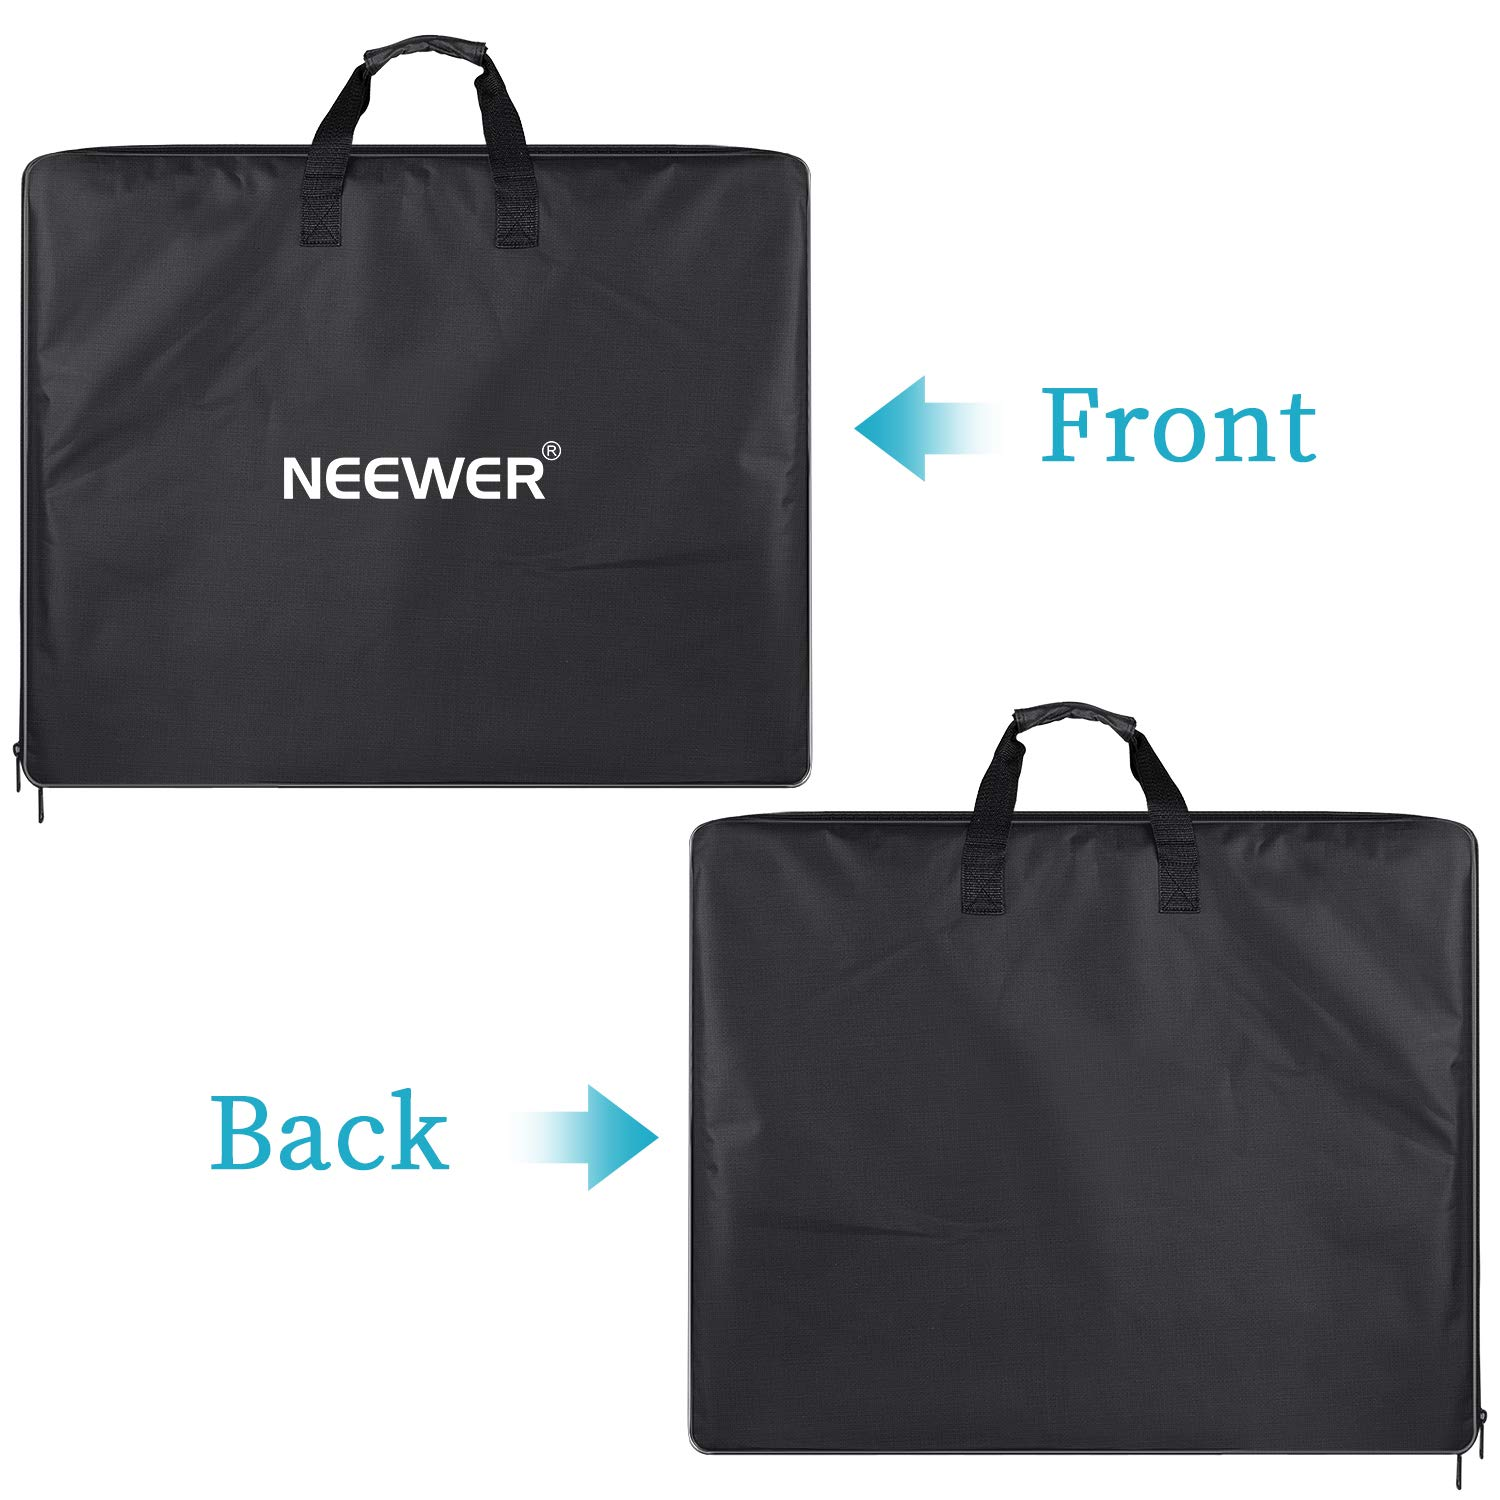 Neewer Enlarged Carrying Bag for 18 inches Ring Light, Light Stand, Accessories - 29.5x23.6 inches/75x60 Centimeters Protective Case, Durable Nylon,Light Weight (Black) by Neewer (Image #4)